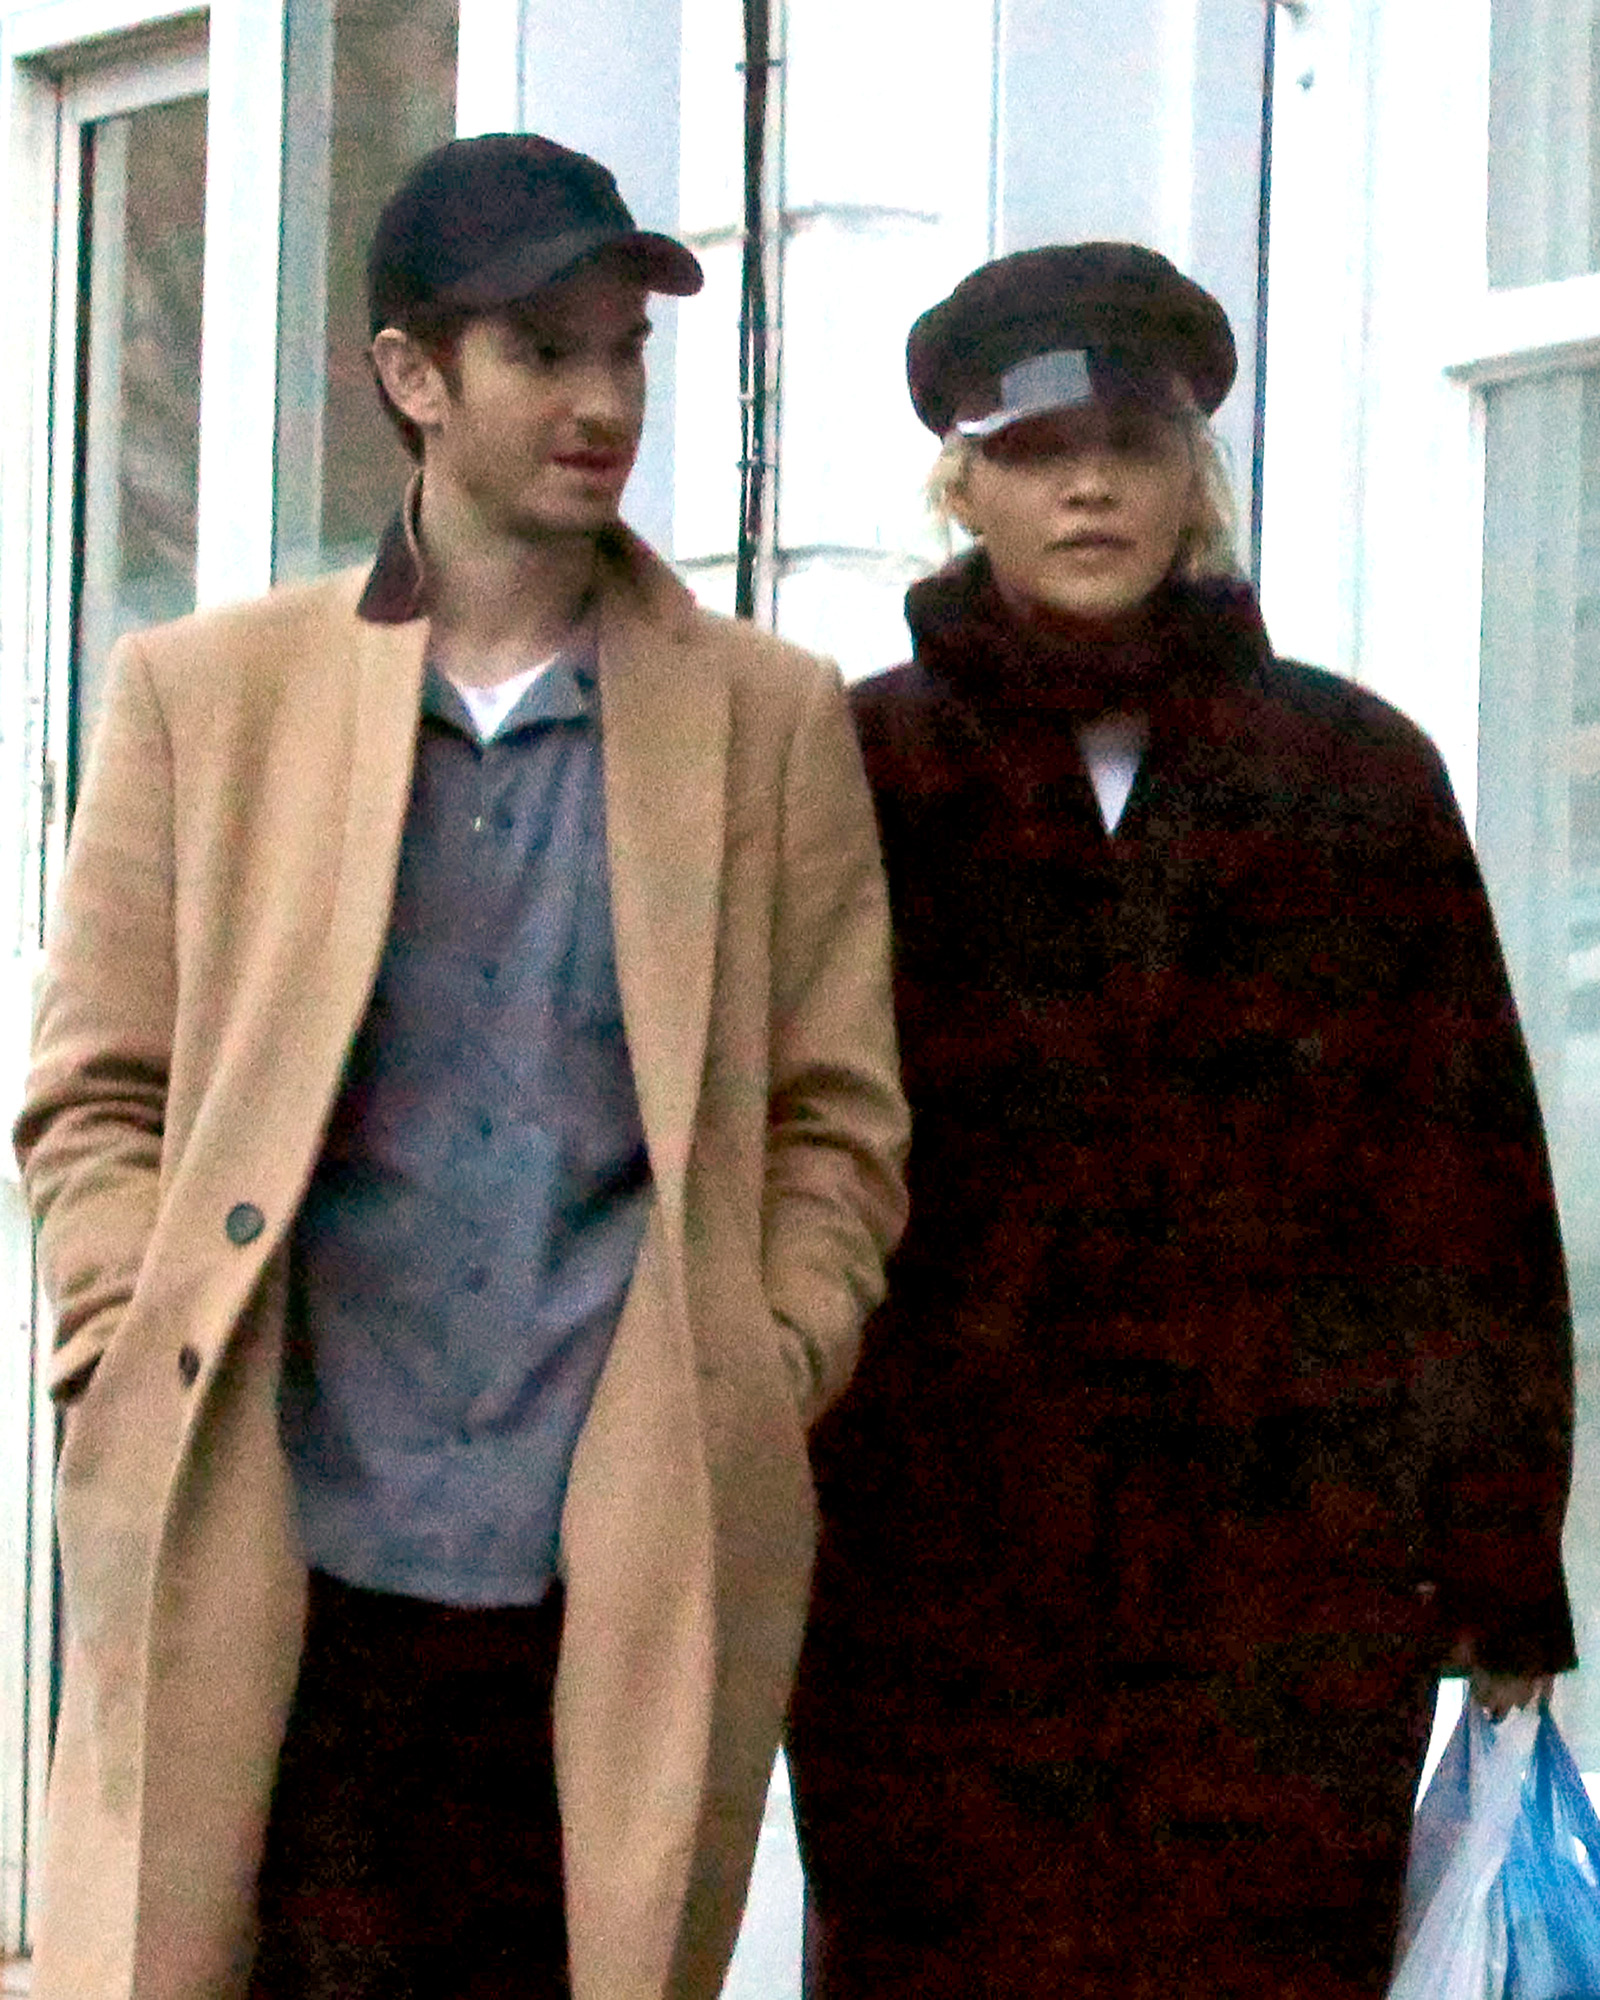 EXCLUSIVE: PREMIUM EXCLUSIVE  * WEB EMBARGO: NO WEB until Tuesday, December 25th at 4pm GMT ** NO NY PAPERS *First Exclusive Pictures Of Andrew Garfield Spotted With Girlfriend Rita Ora As They Shop In Primrose Hill